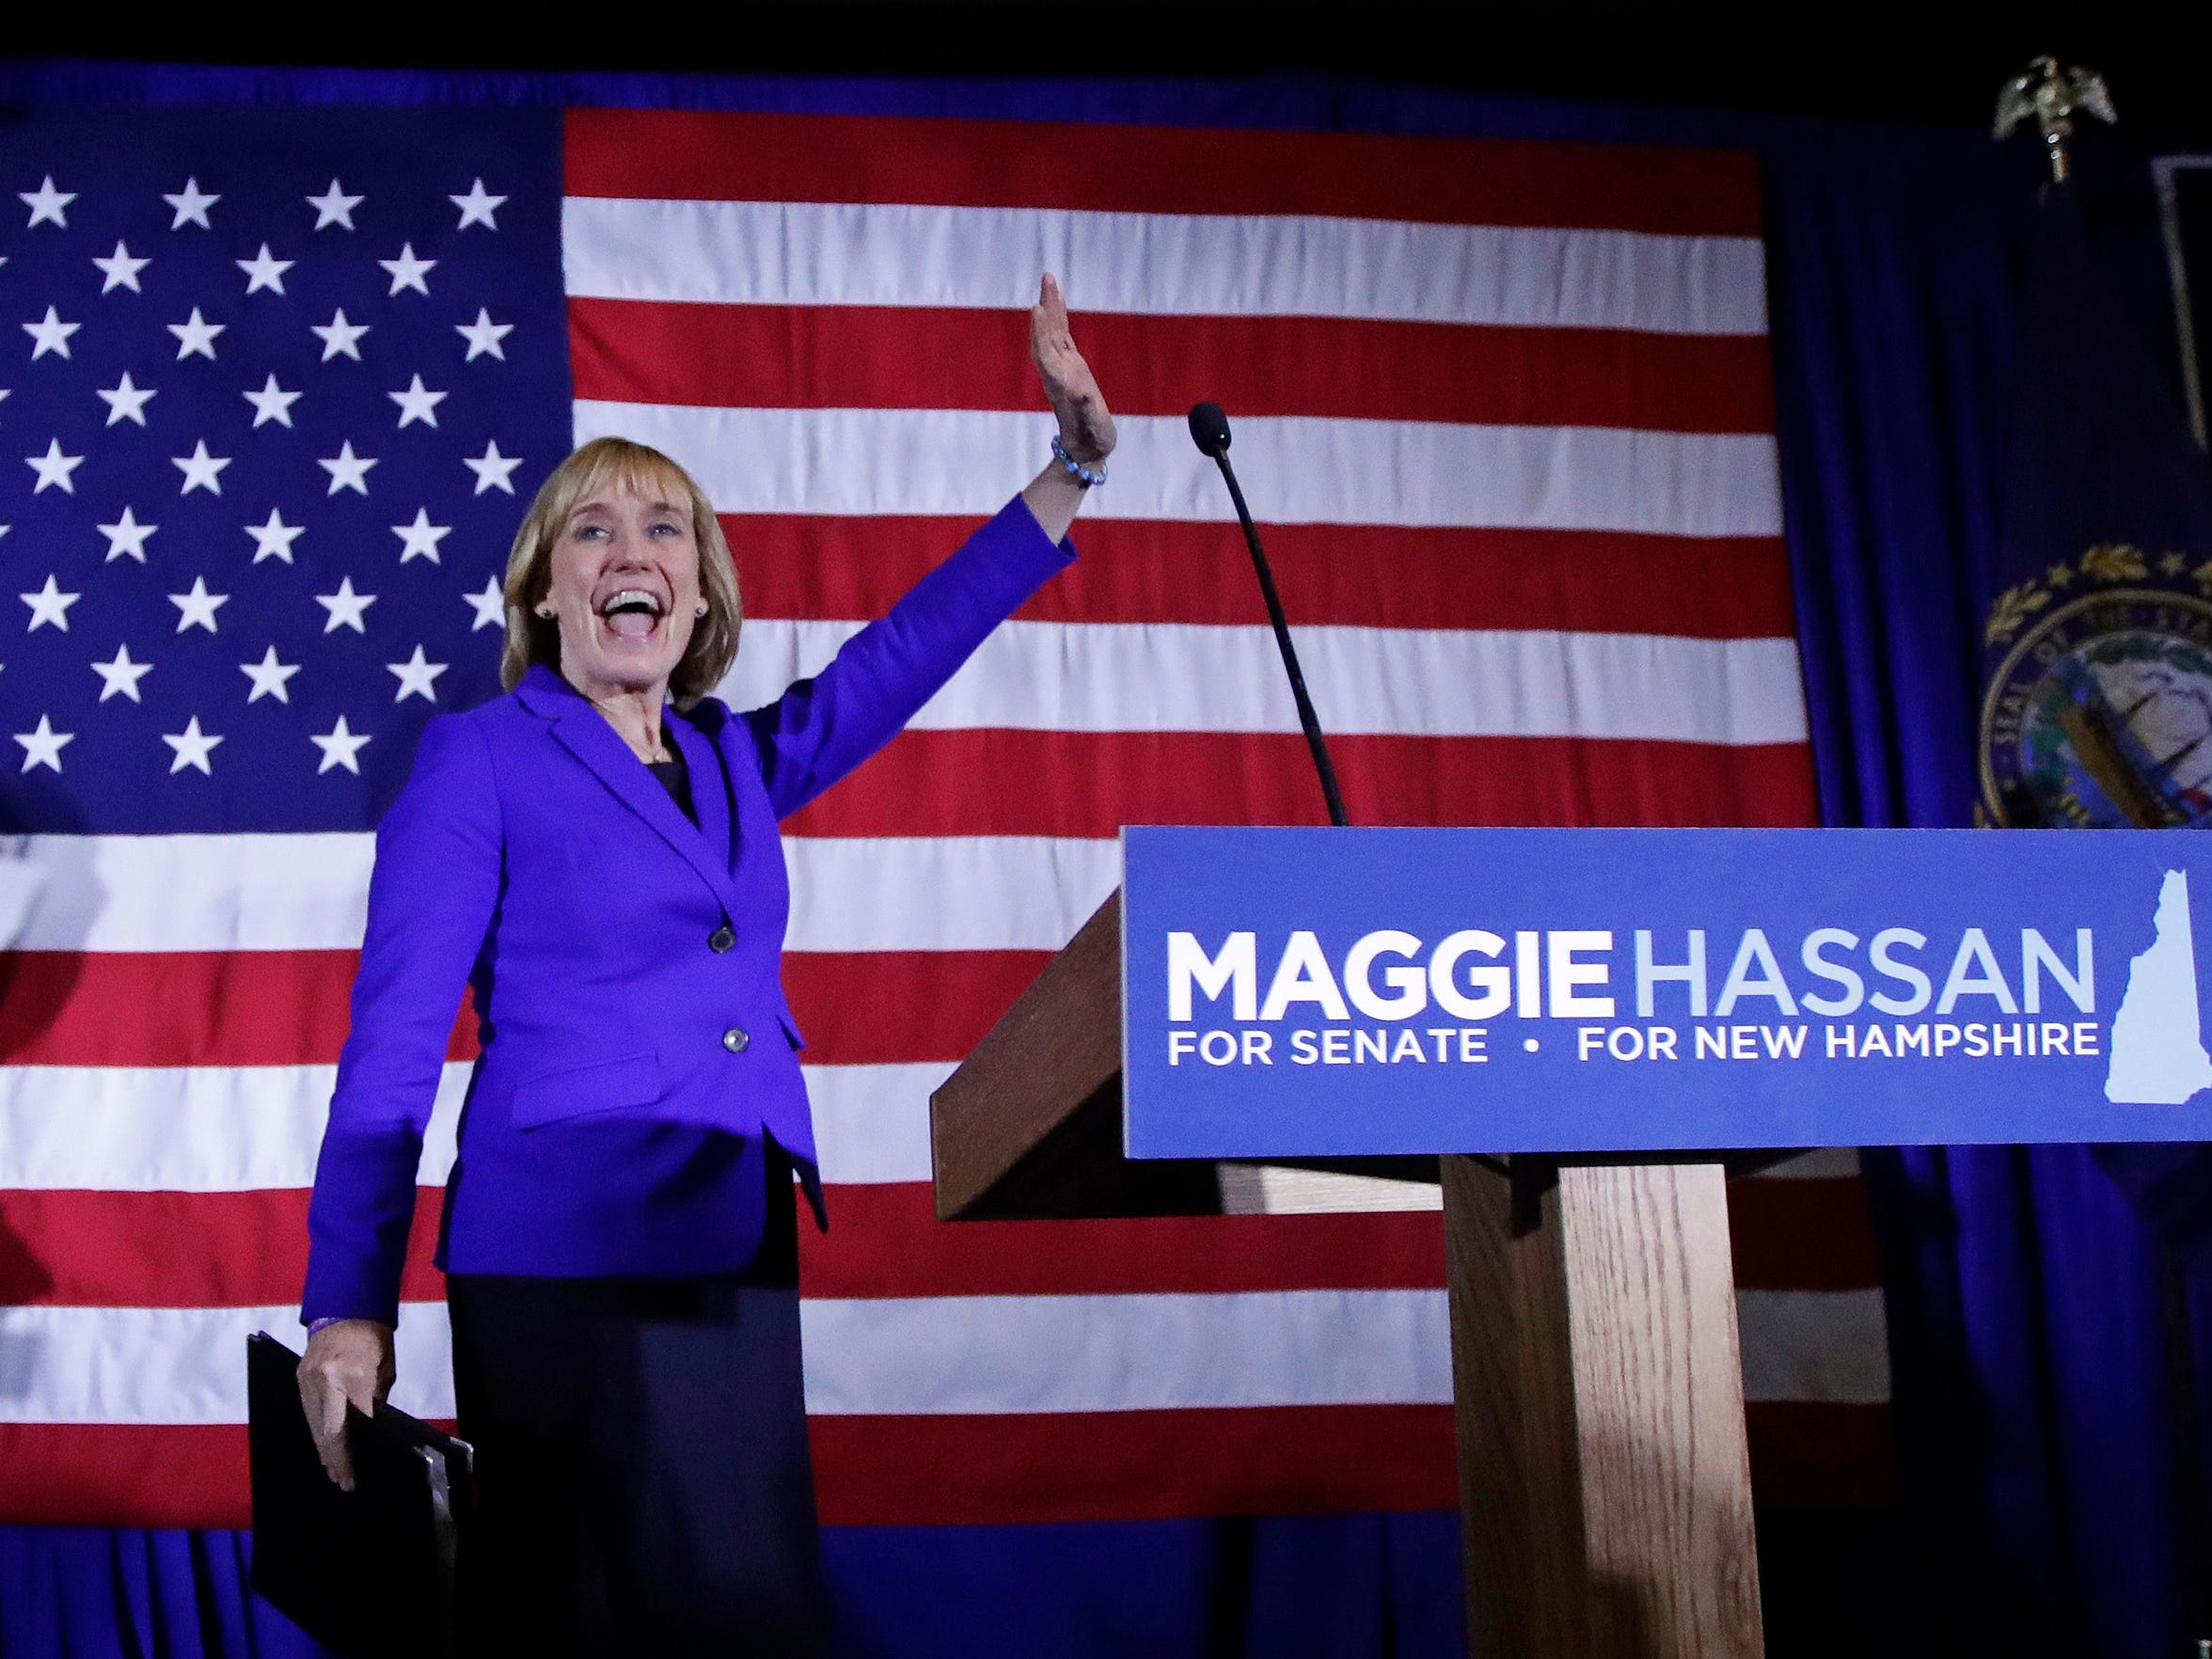 Maggie Hassan waves to supporters during an election night rally in Manchester, N.H., on Nov. 9, 2016.